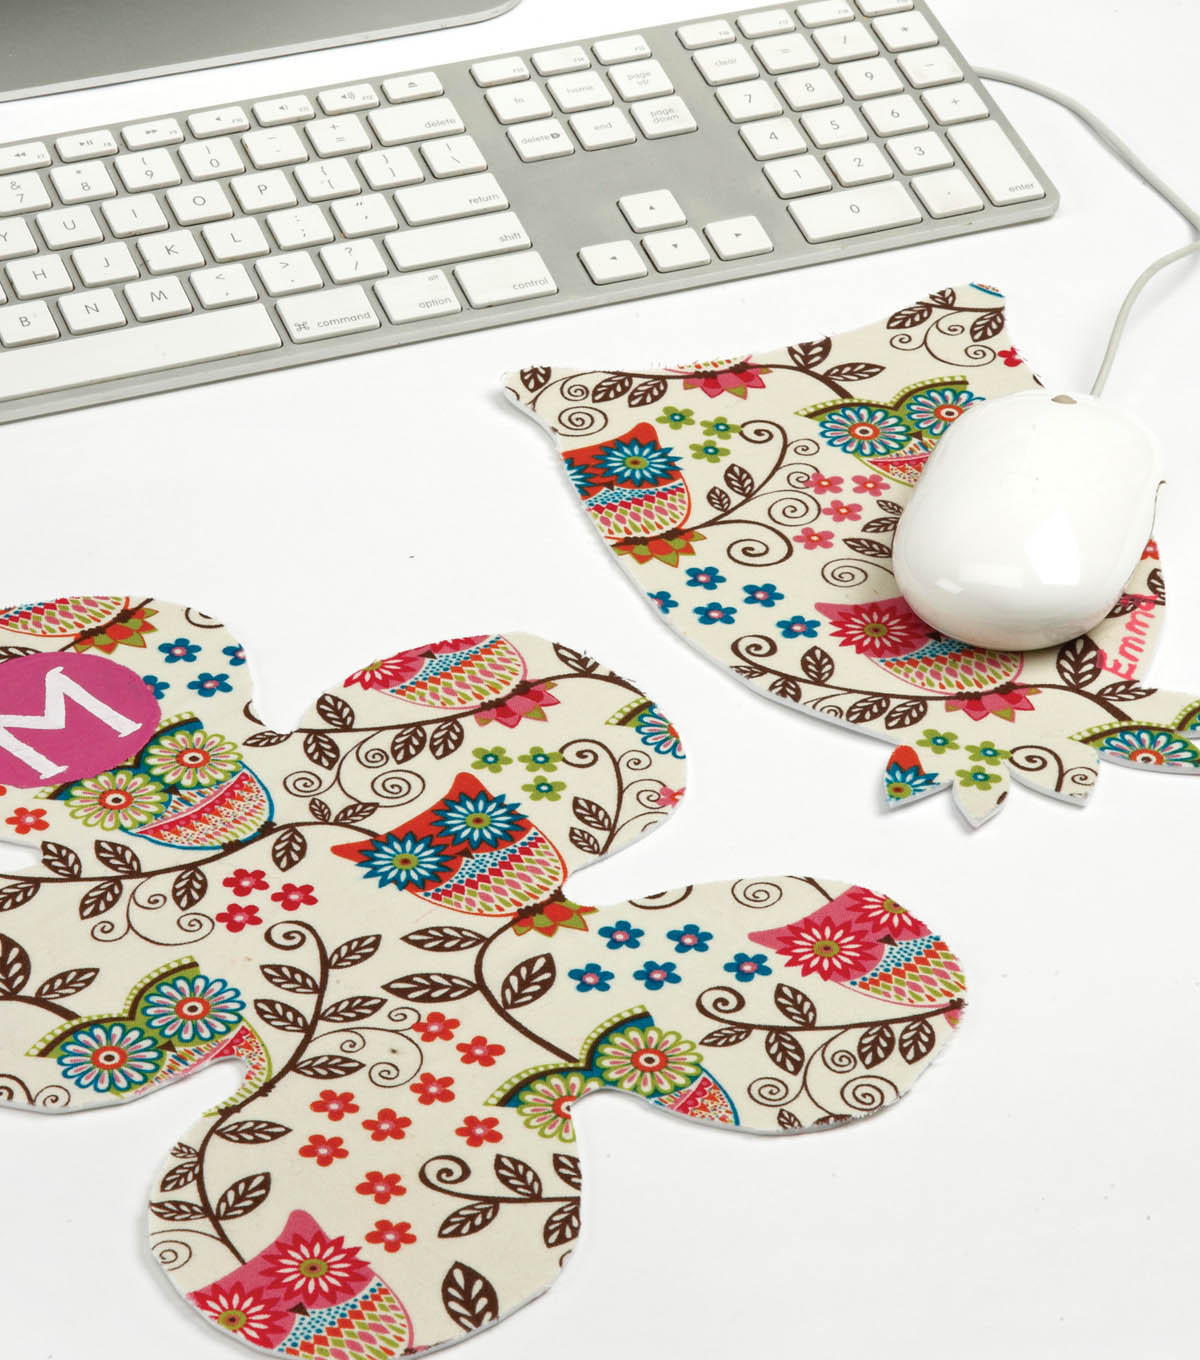 Sew Personal Mouse Pad